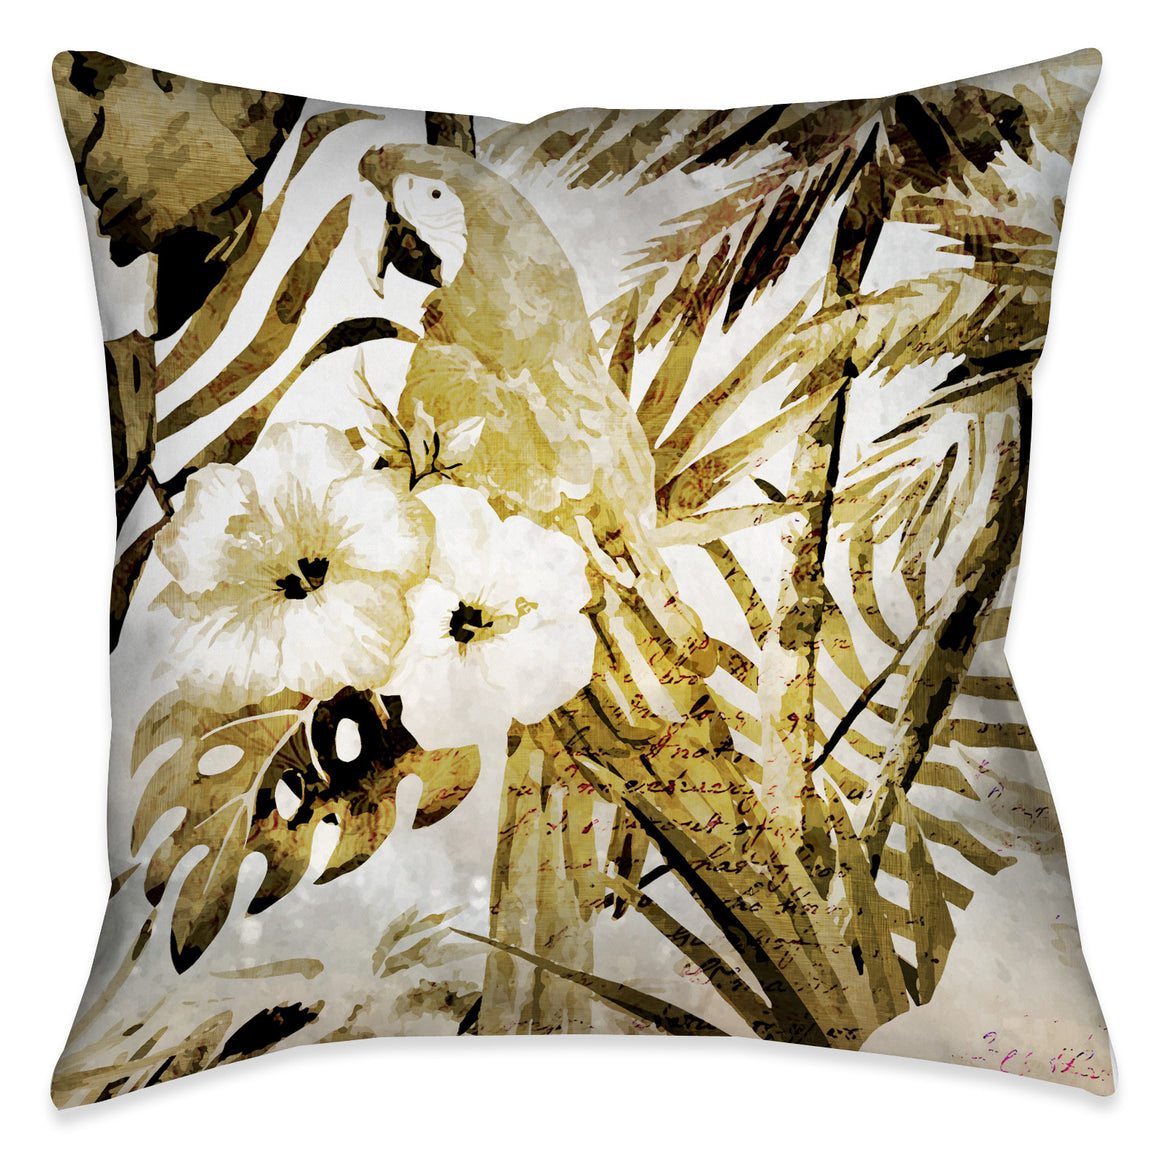 Golden Macaw Outdoor Decorative Pillow